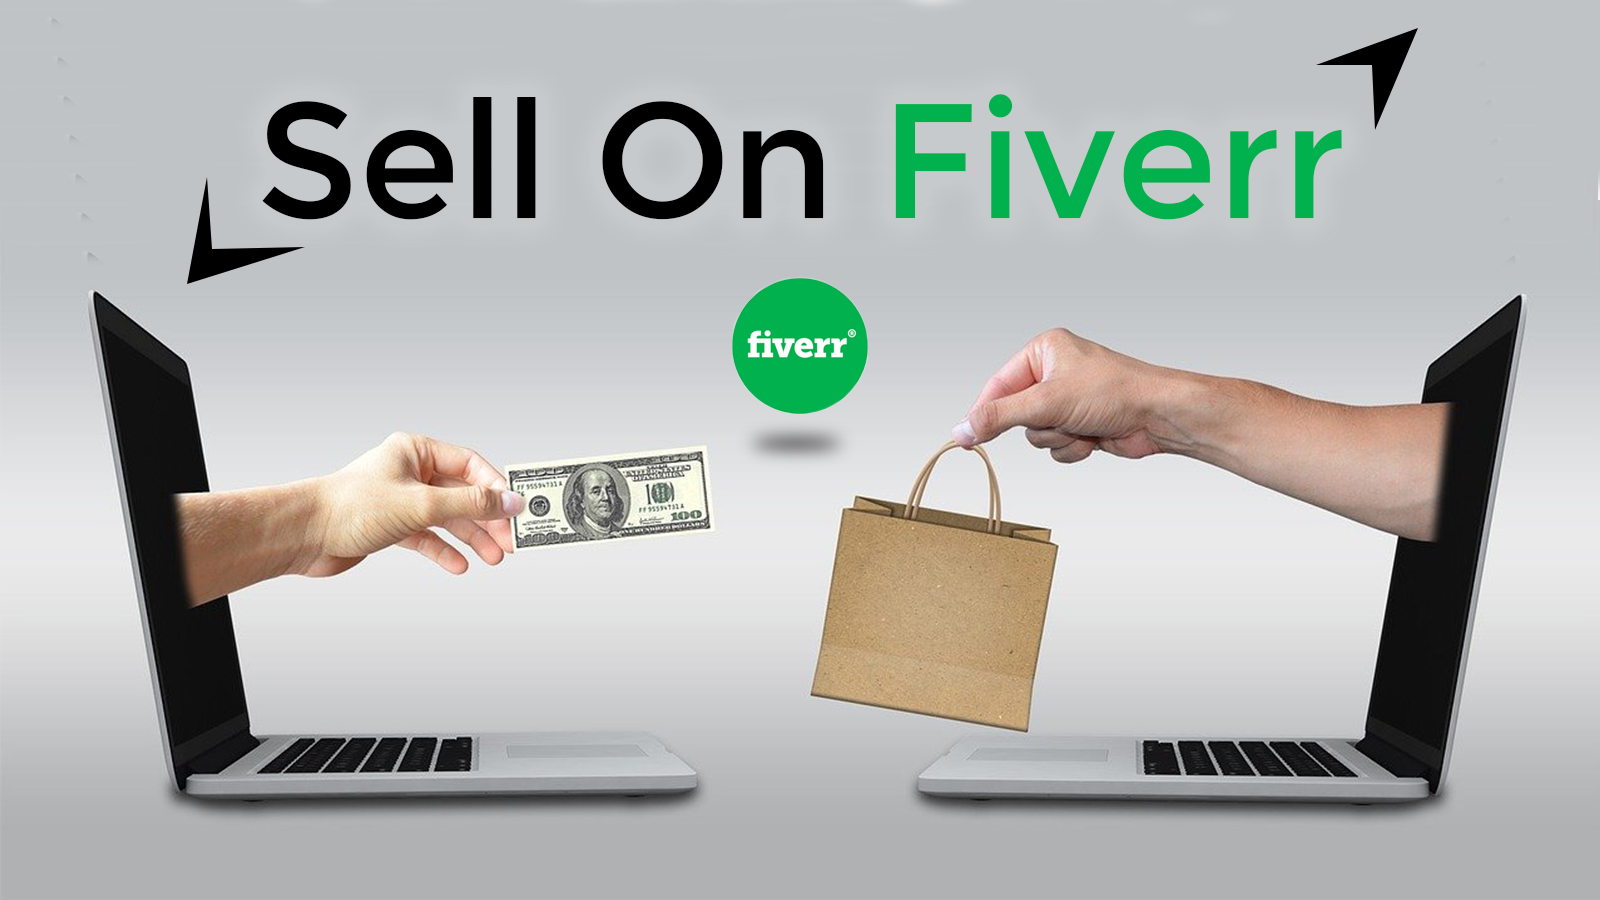 How to make money on Fiverr: Presentation and tips to offer your services